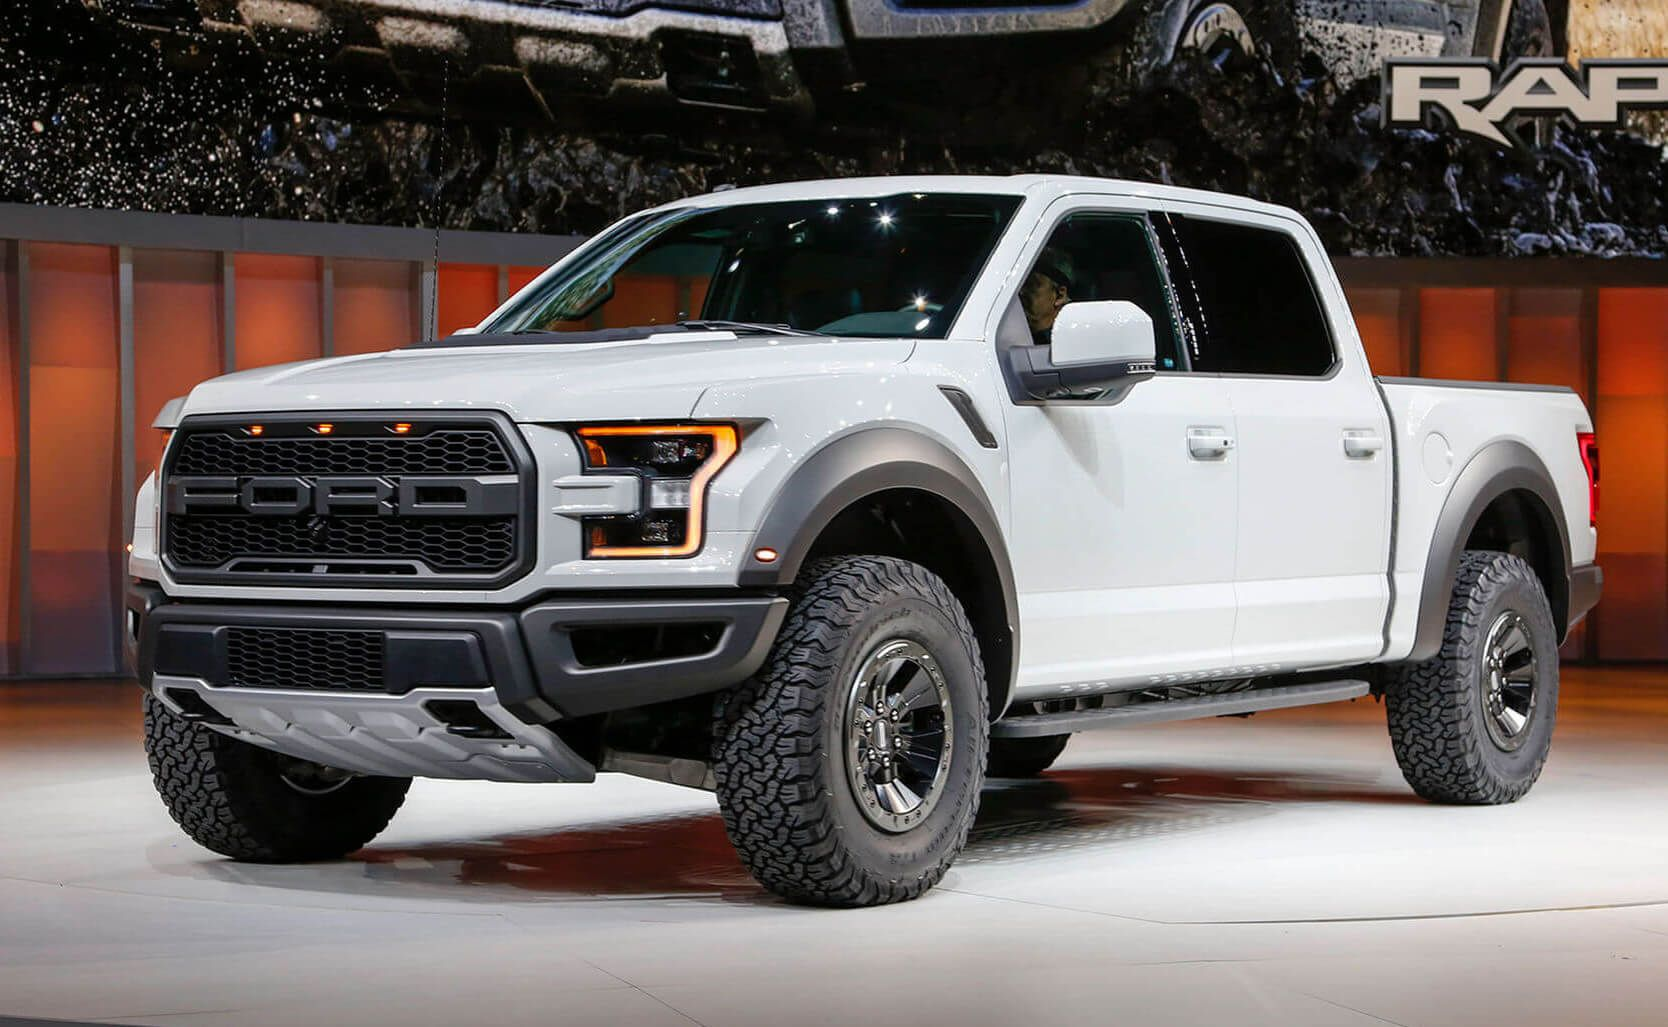 2017 ford raptor silver 22x9 5 dub 6six wheels in brushed double dark tint 35x12 50r22 nitto terra grappler g2 215580 traxda 2 25 front le